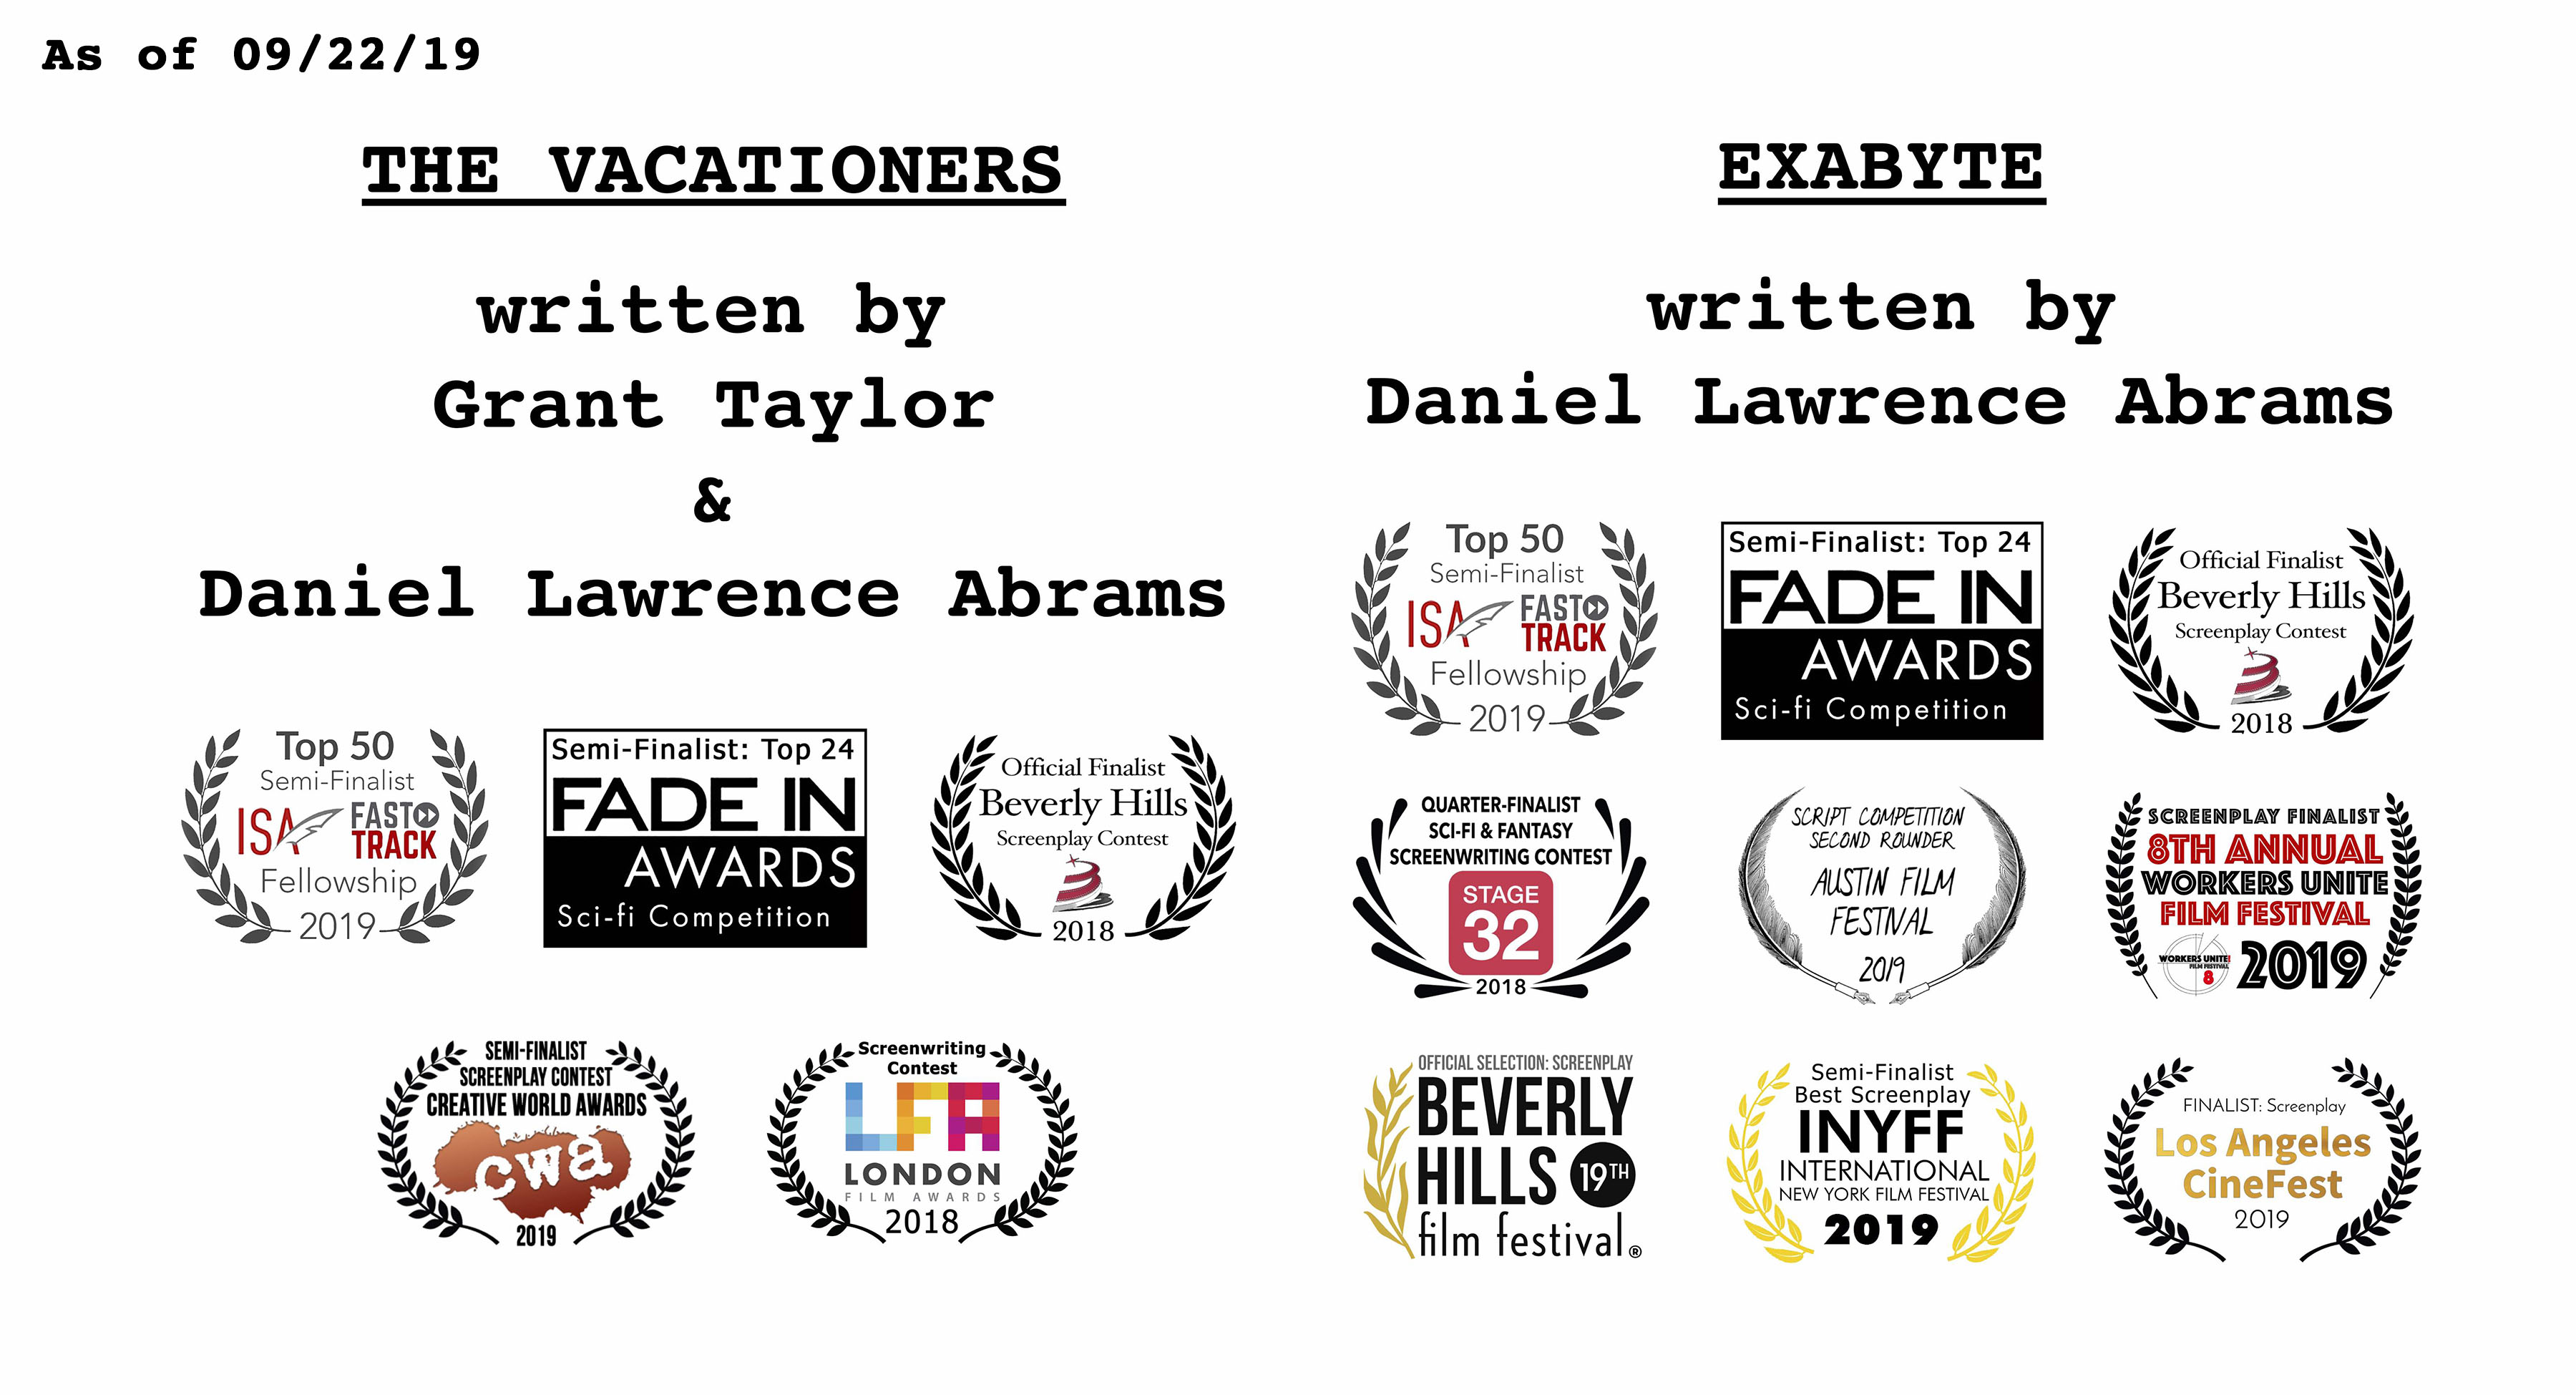 Screenplay accolades/laurels for EXABYTE (written by Daniel Lawrence Abrams) and THE VACATIONERS (written by Grant Taylor & Daniel Lawrence Abrams) as of September 22, 2019.